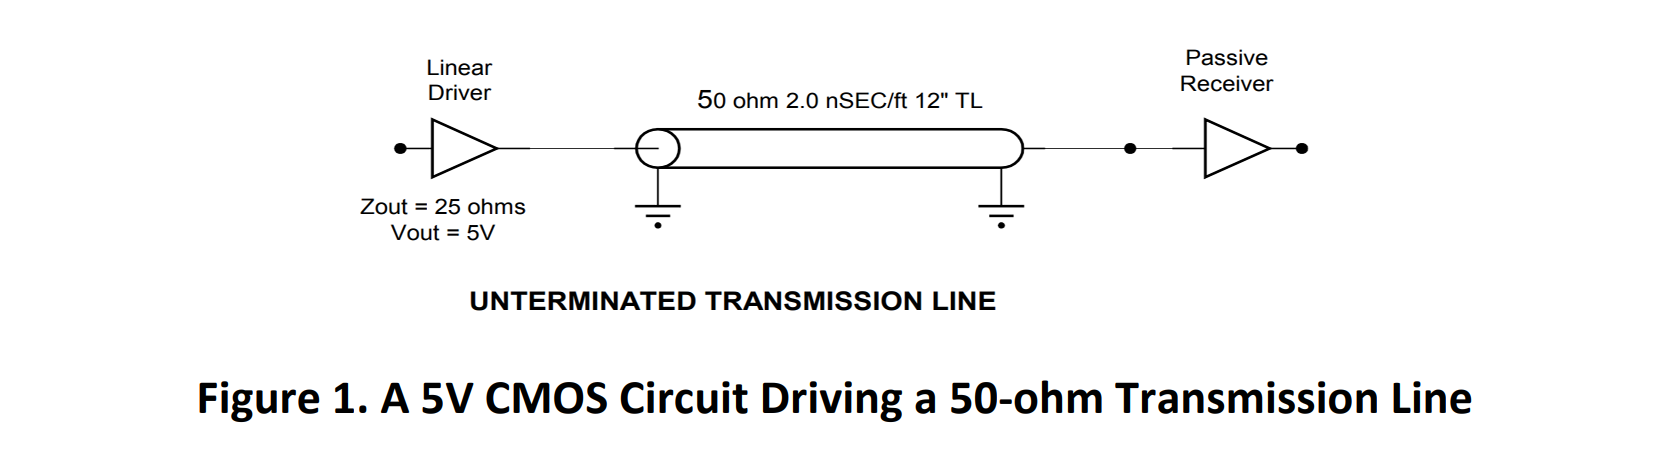 Figure 1. A linear divider connected to an unterminated transmission line connected to a passive receiver